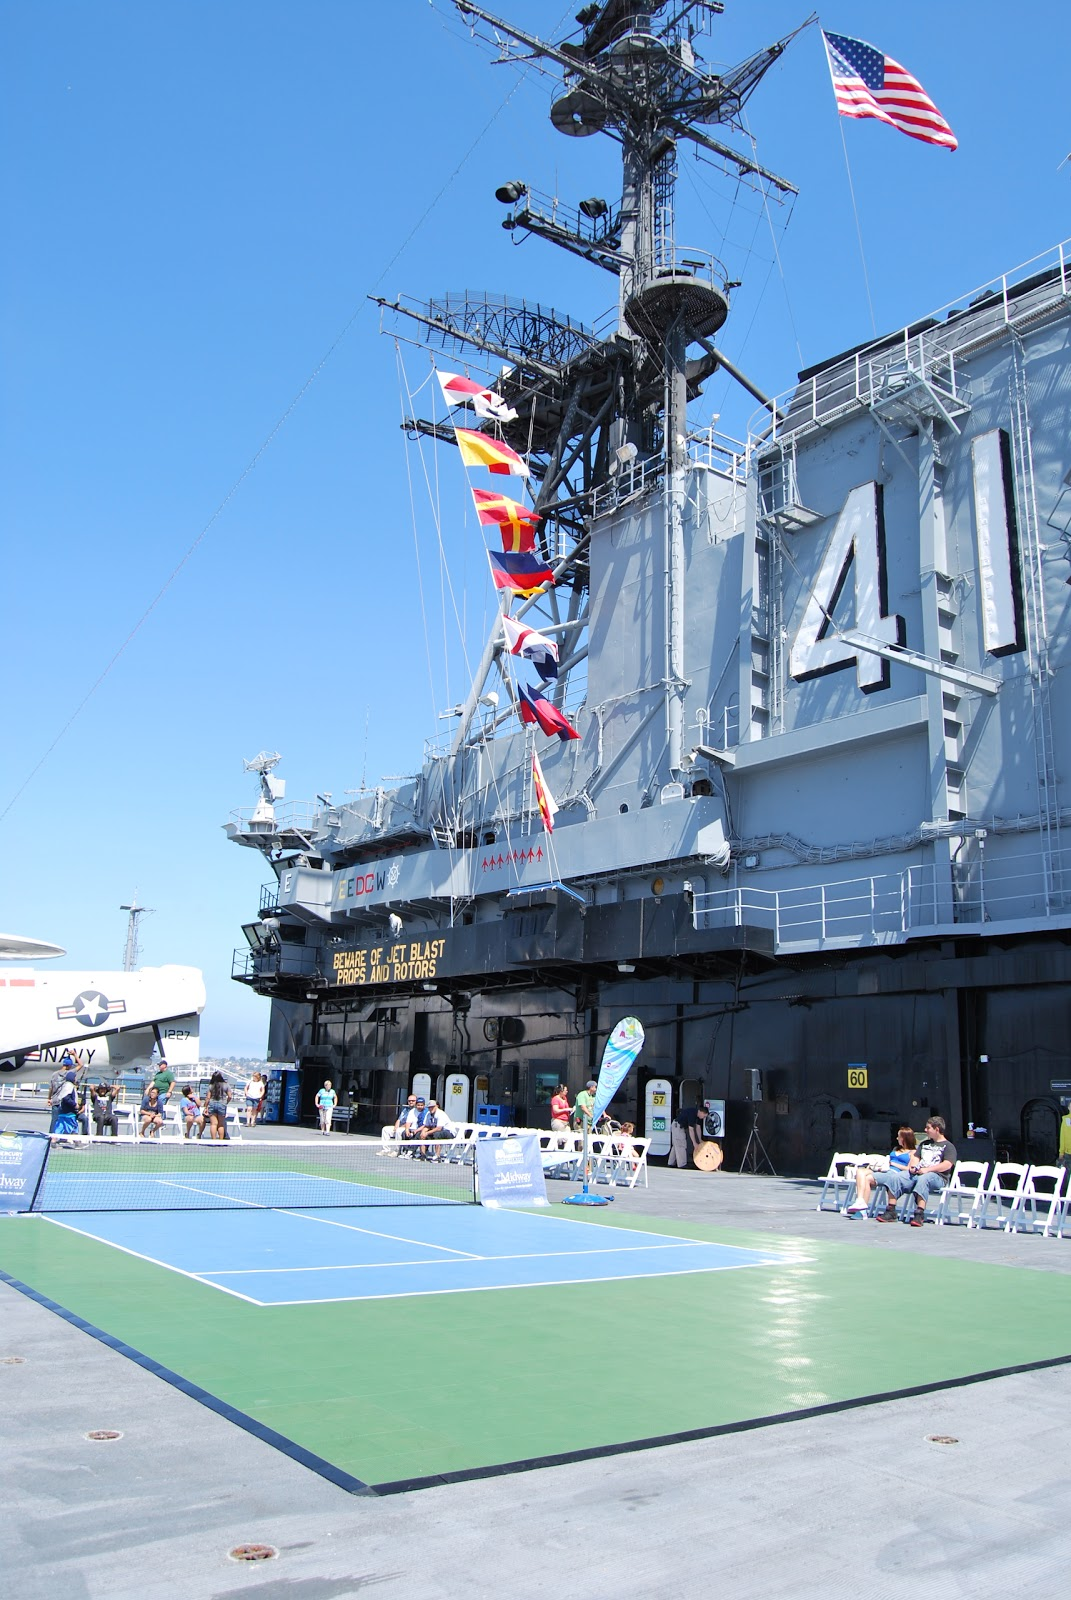 Mercury Home Insurance >> Sport Court of Southern California: Tennis on the USS ...